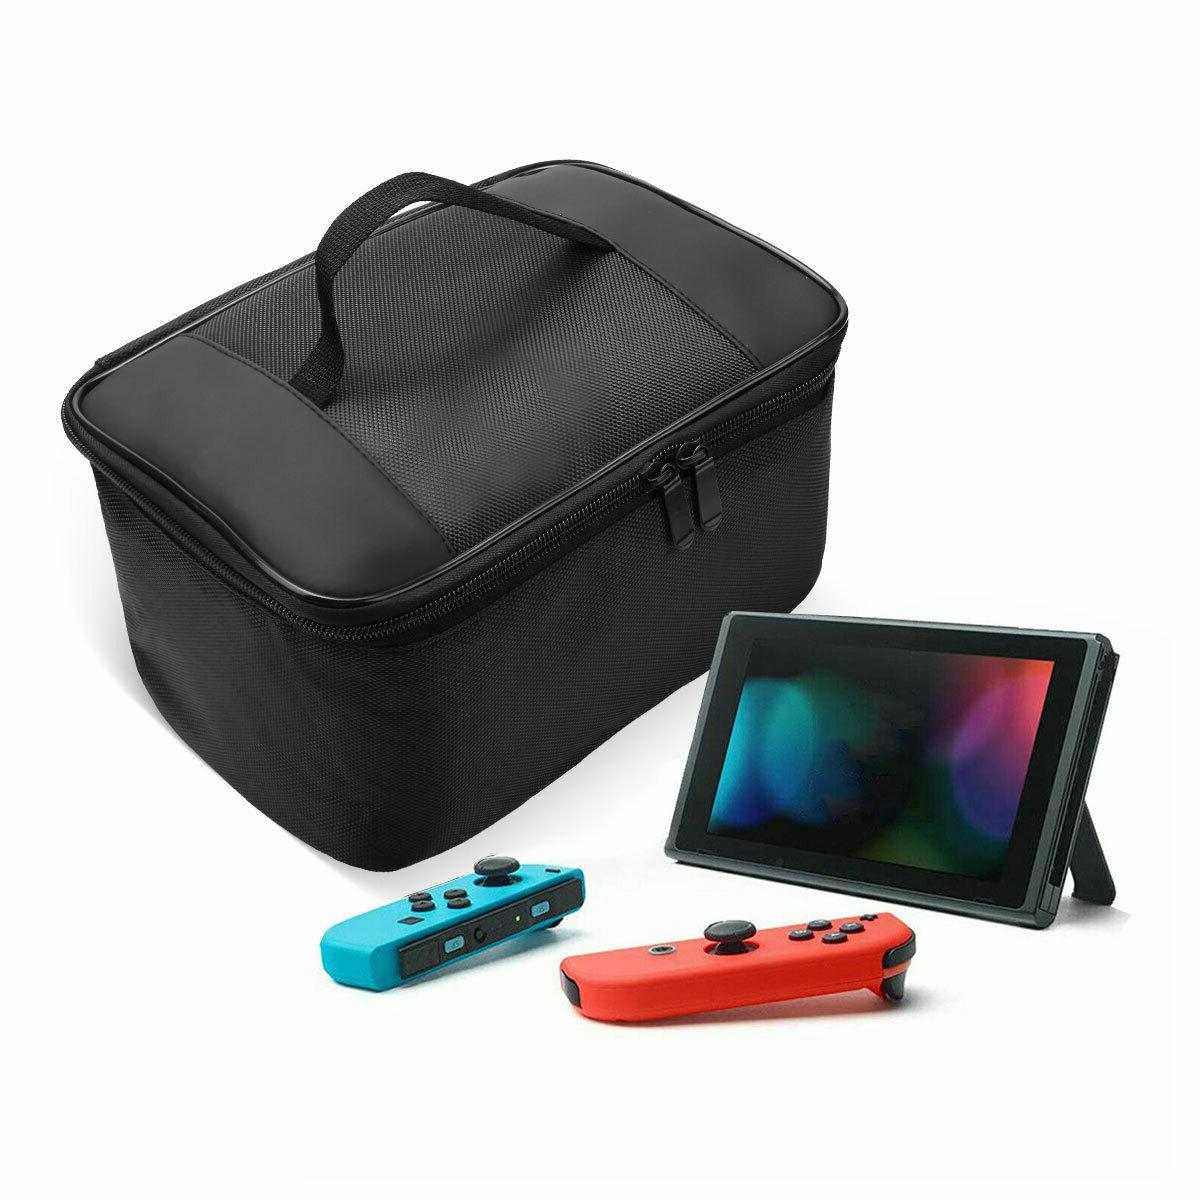 Black Bag For Console